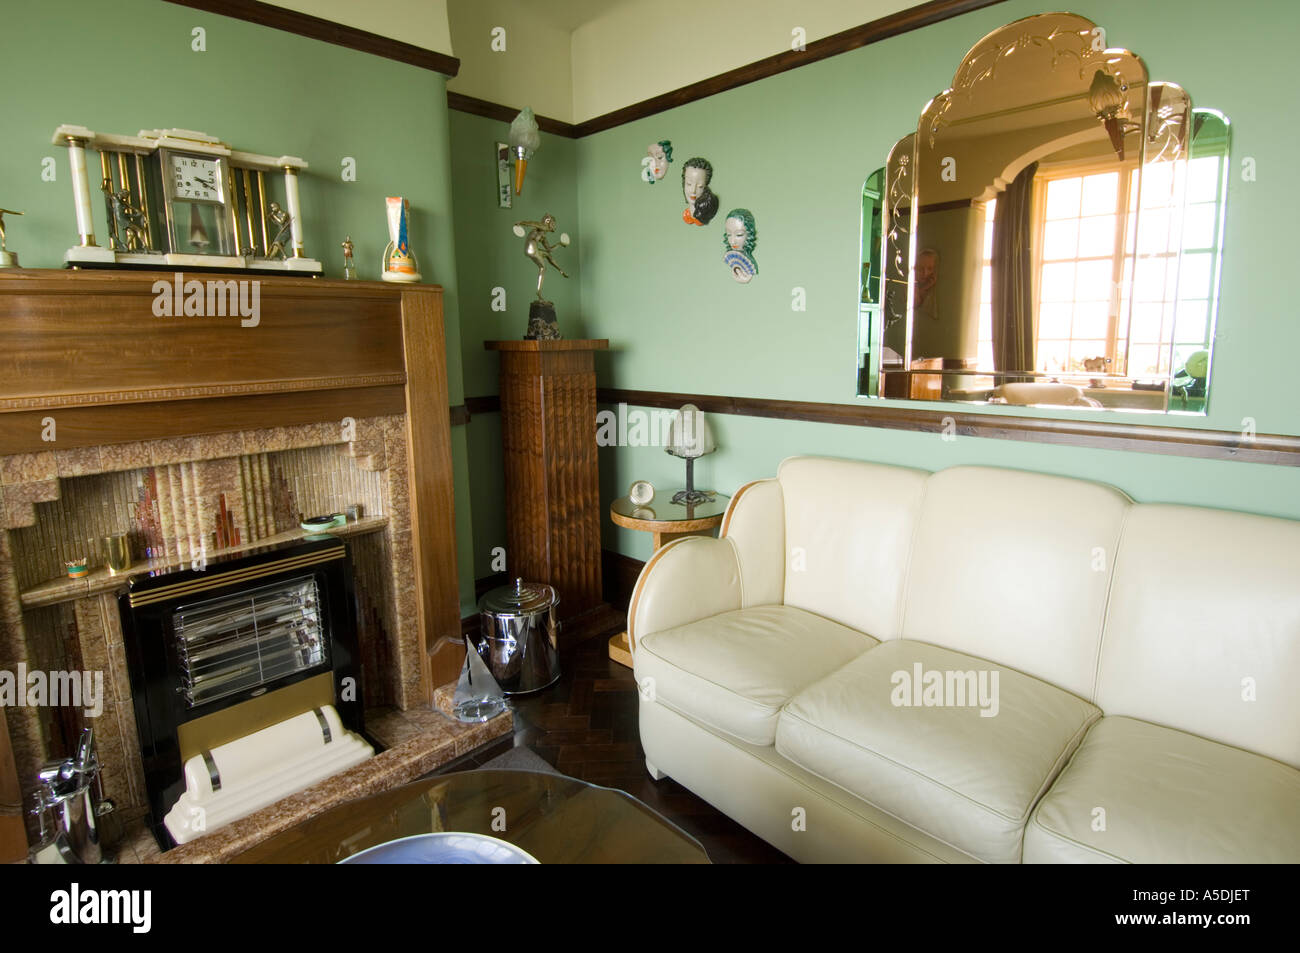 renoviertes art deco jugendstil 1930 s haus innen lounge wohnzimmer gr ne farbe stockfoto bild. Black Bedroom Furniture Sets. Home Design Ideas